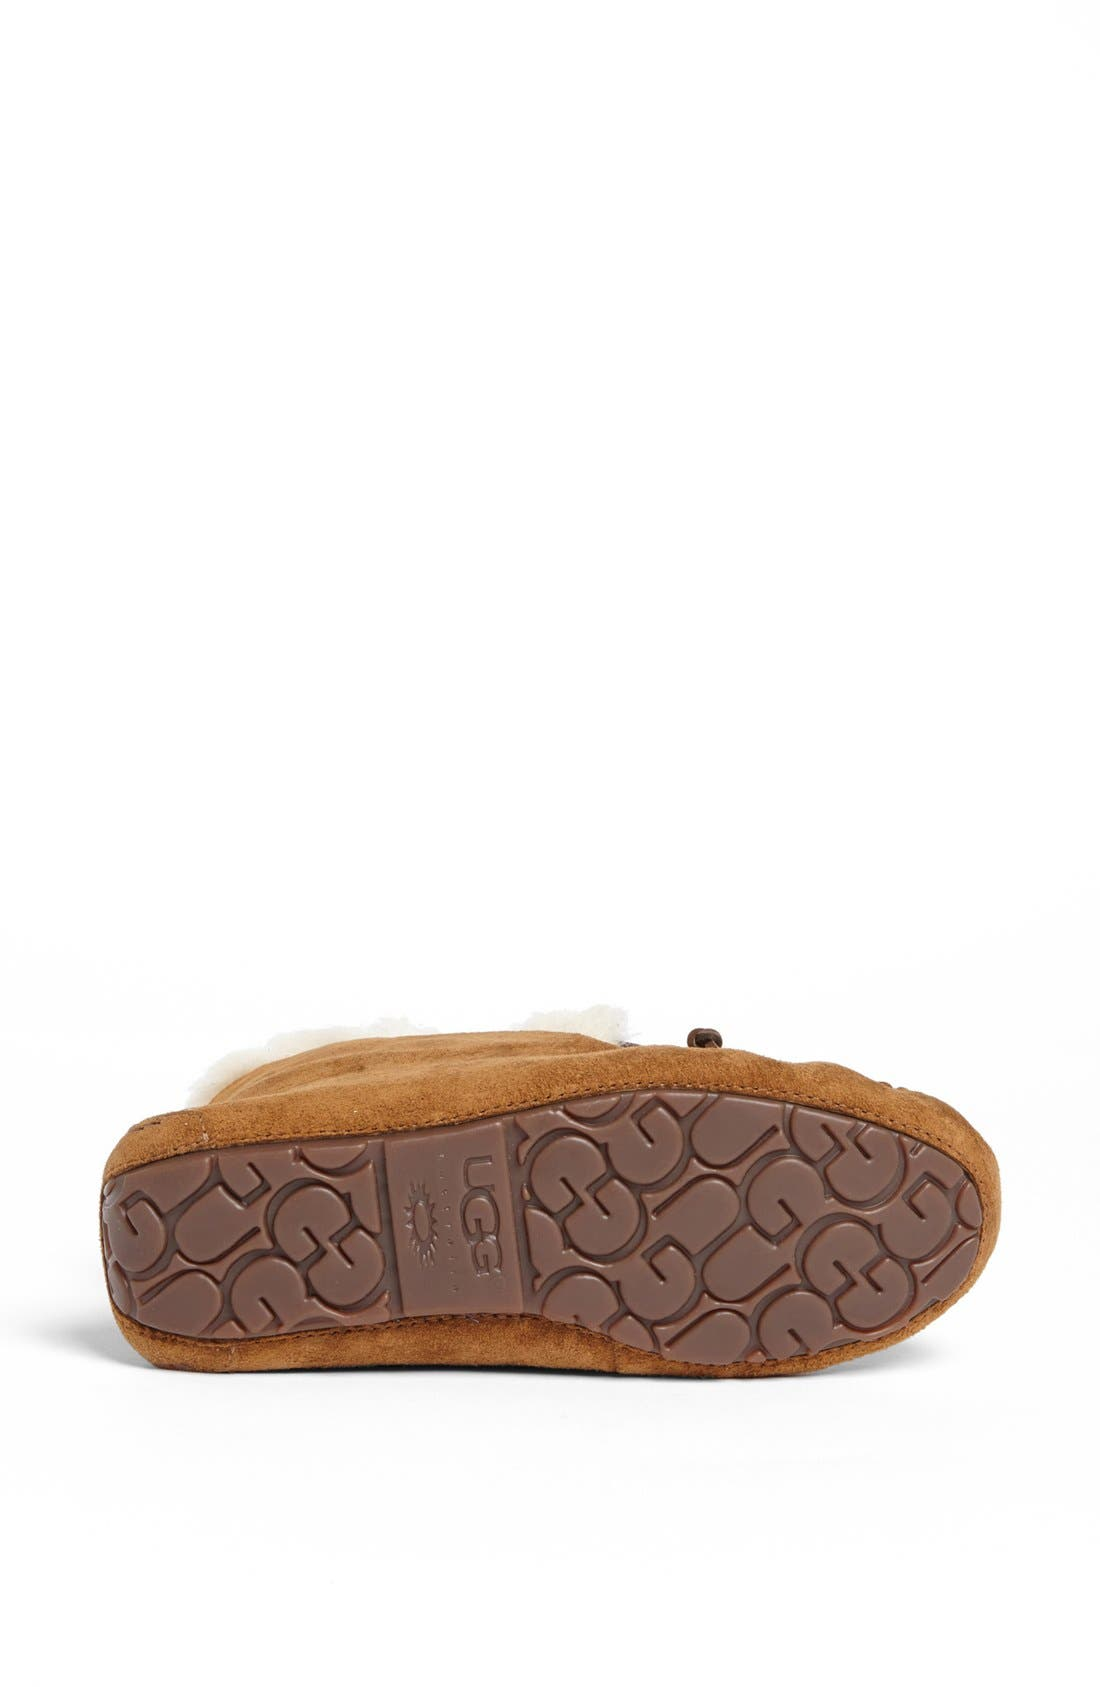 UGGpure<sup>™</sup> Alena Suede Slipper Bootie,                             Alternate thumbnail 6, color,                             CHESTNUT